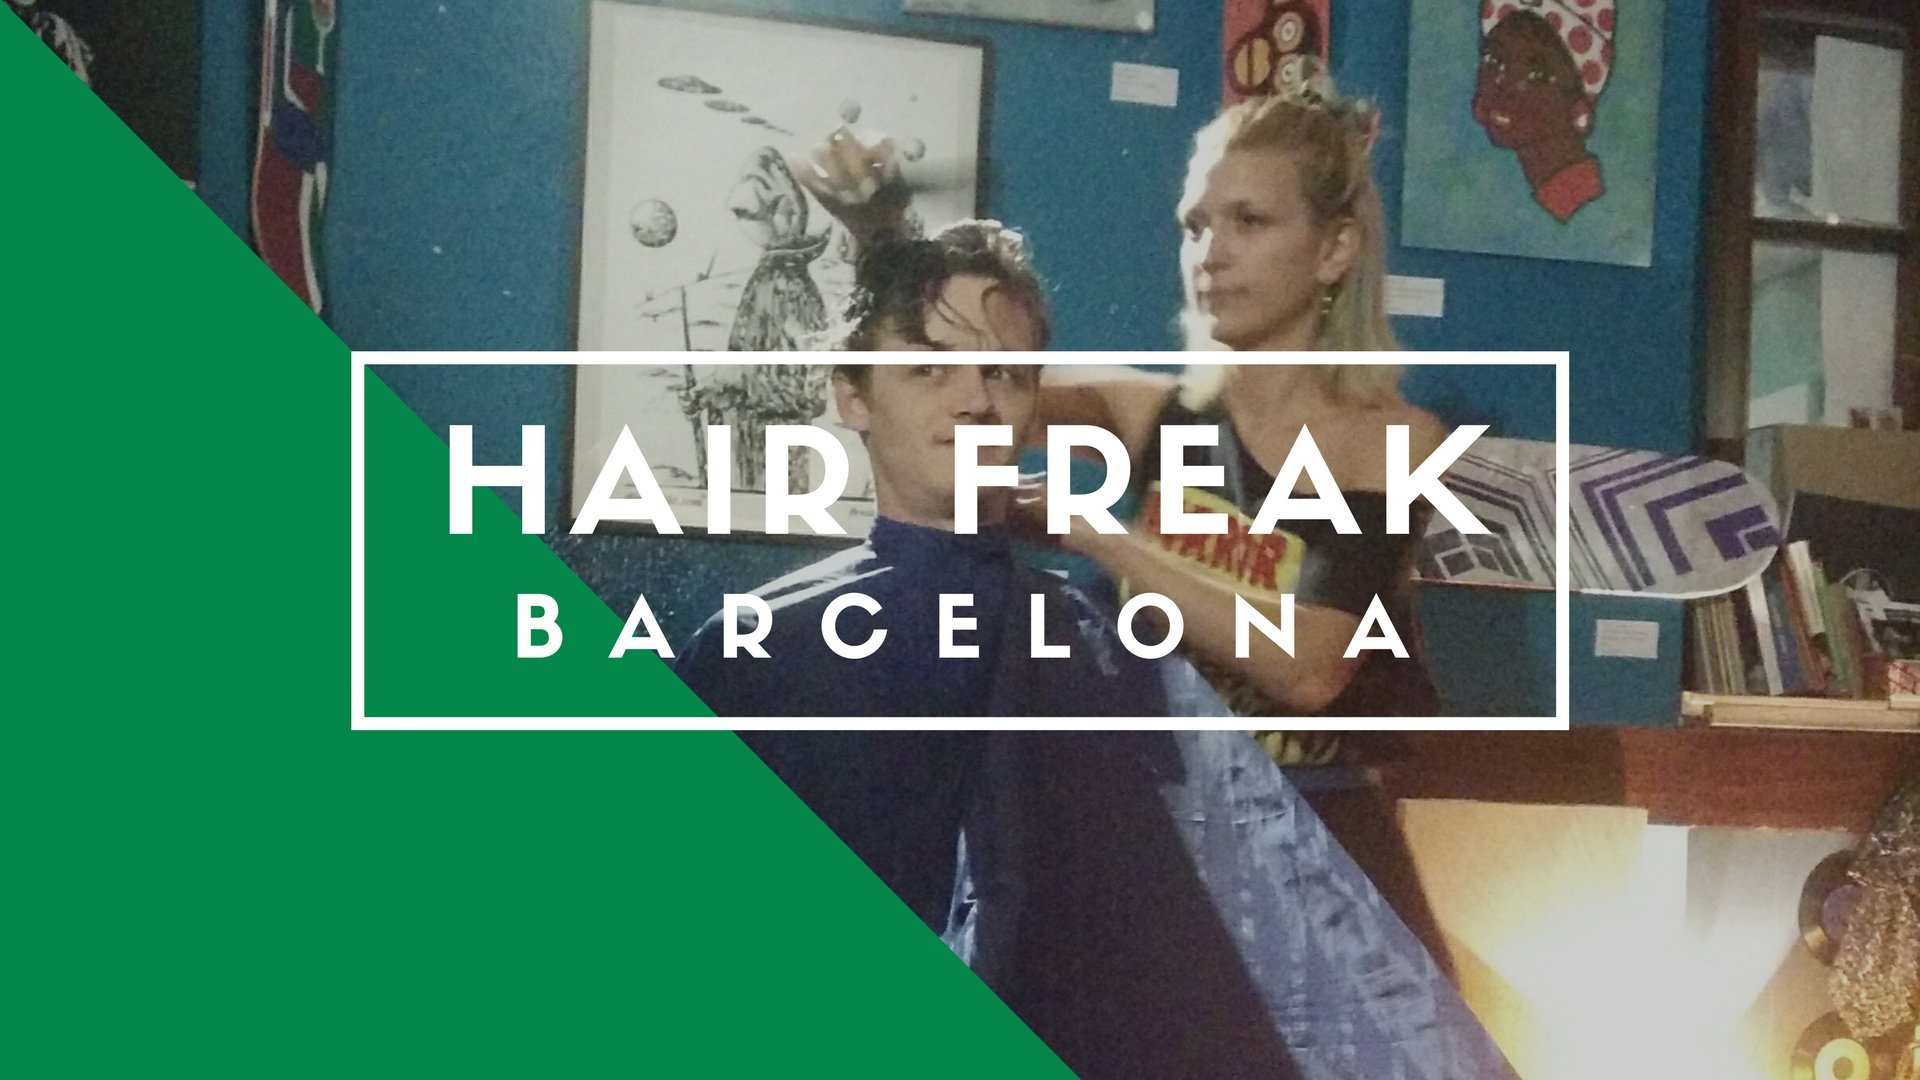 Hair Freak, Barcelona